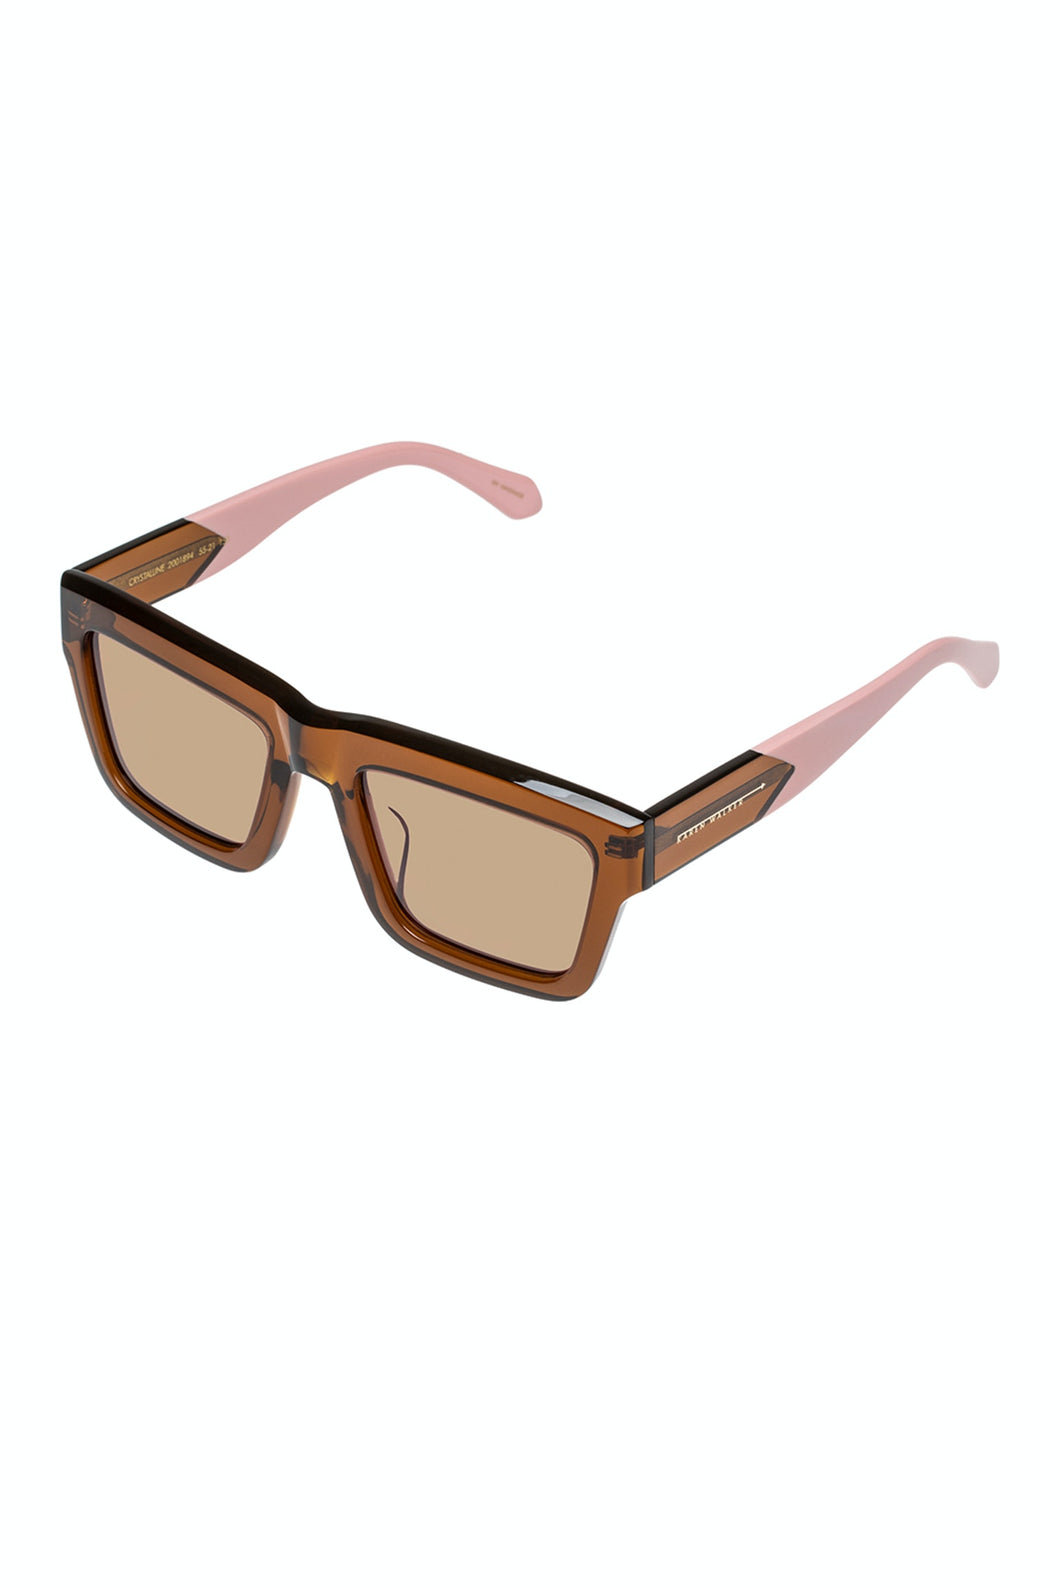 KAREN WALKER CRYSTALLINE SUNGLASSES